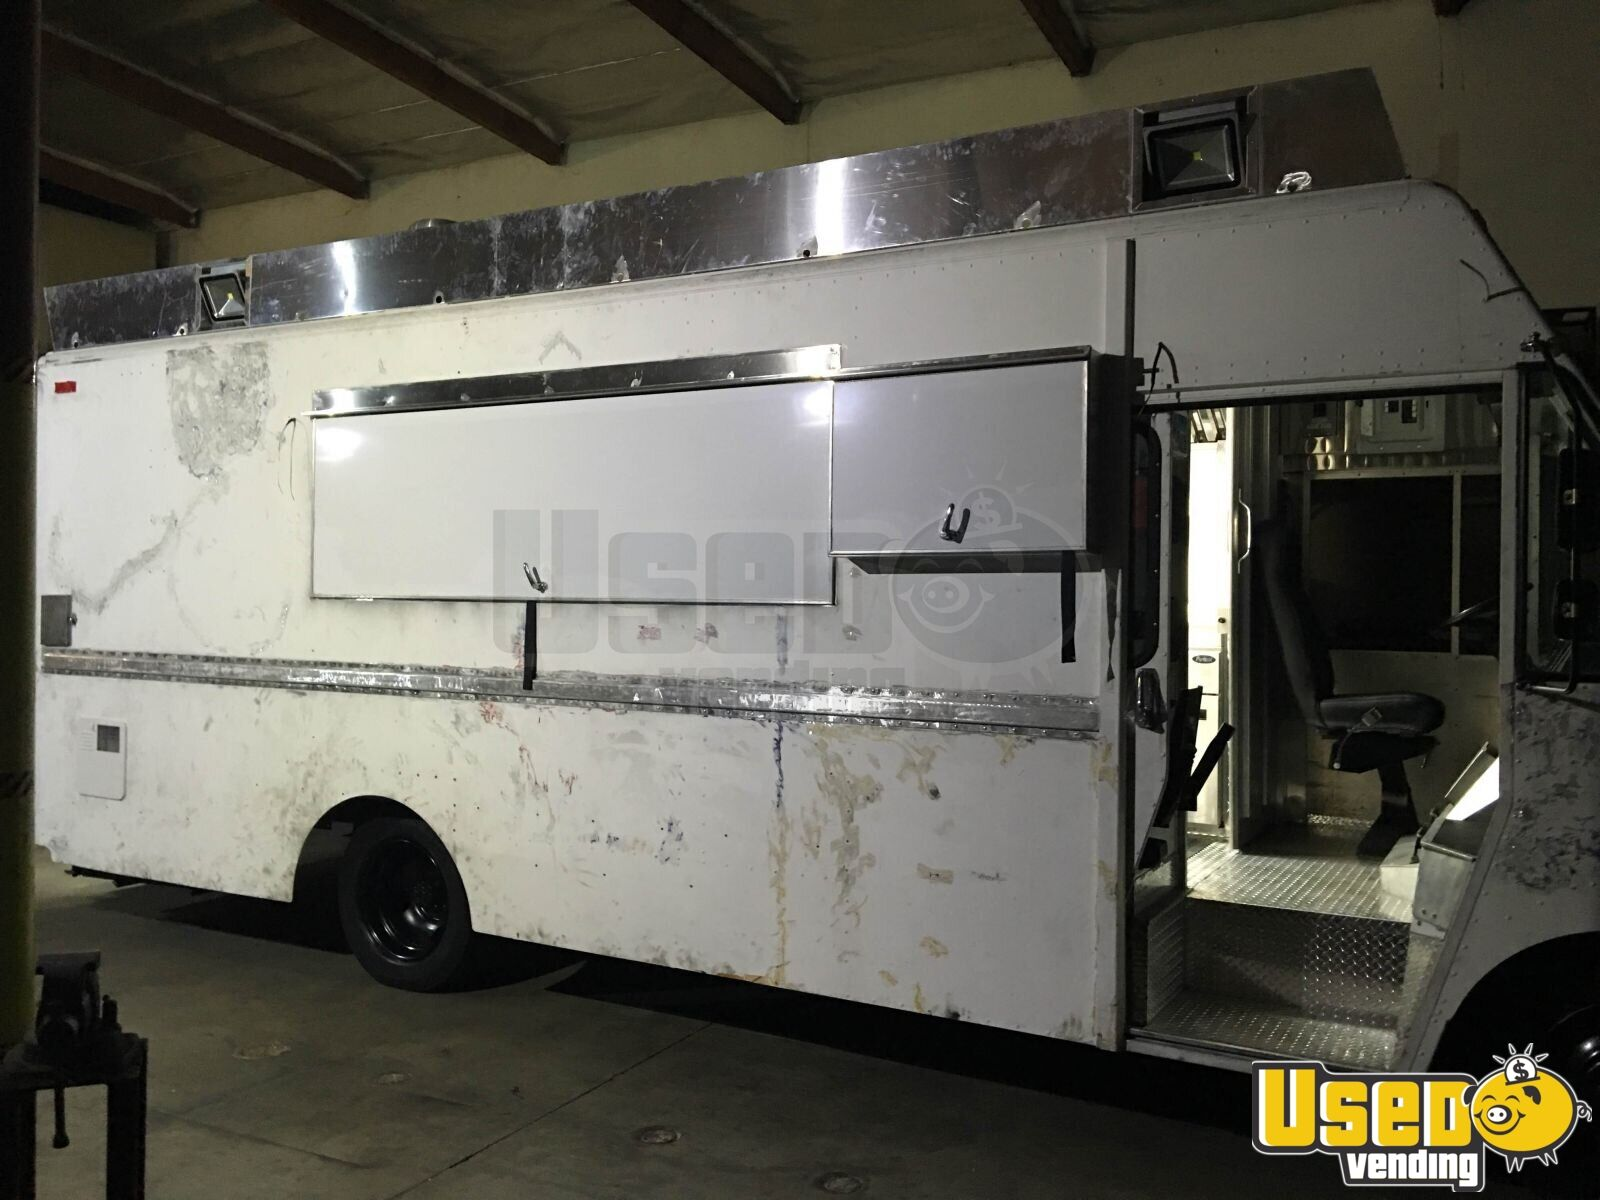 1995 Chevrolet Food Truck Air Conditioning California Diesel Engine for Sale - 2